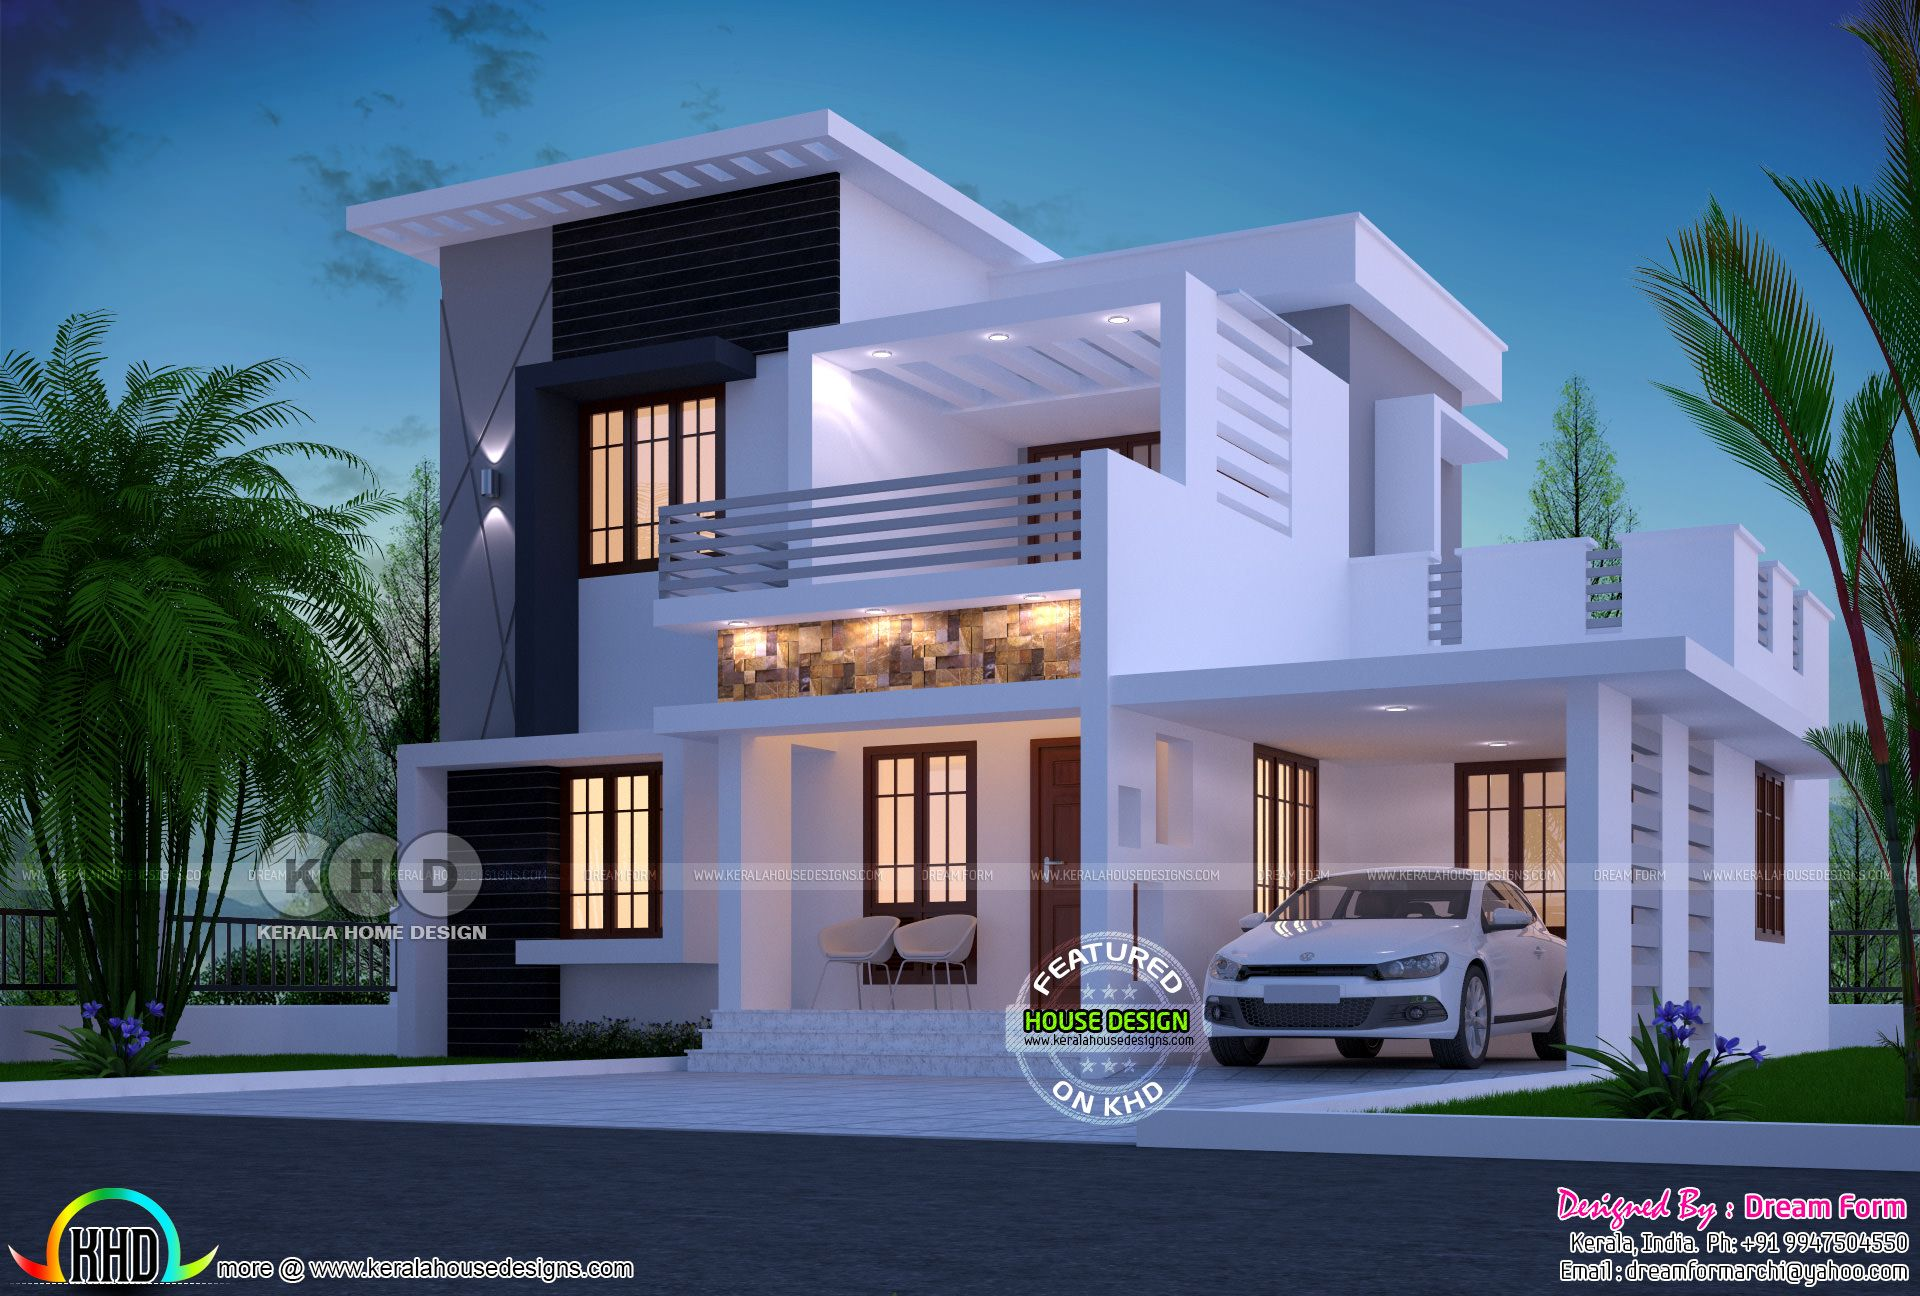 1750 square feet 4 bhk modern home design | Kerala house ... on indian house designs, kerala house designs, small house designs, pampanga philippines house designs, latest building designs, long house designs, modern house plans and designs, two-story house designs, basic house designs, contemporary house plans and designs, amazing house designs, new home designs,